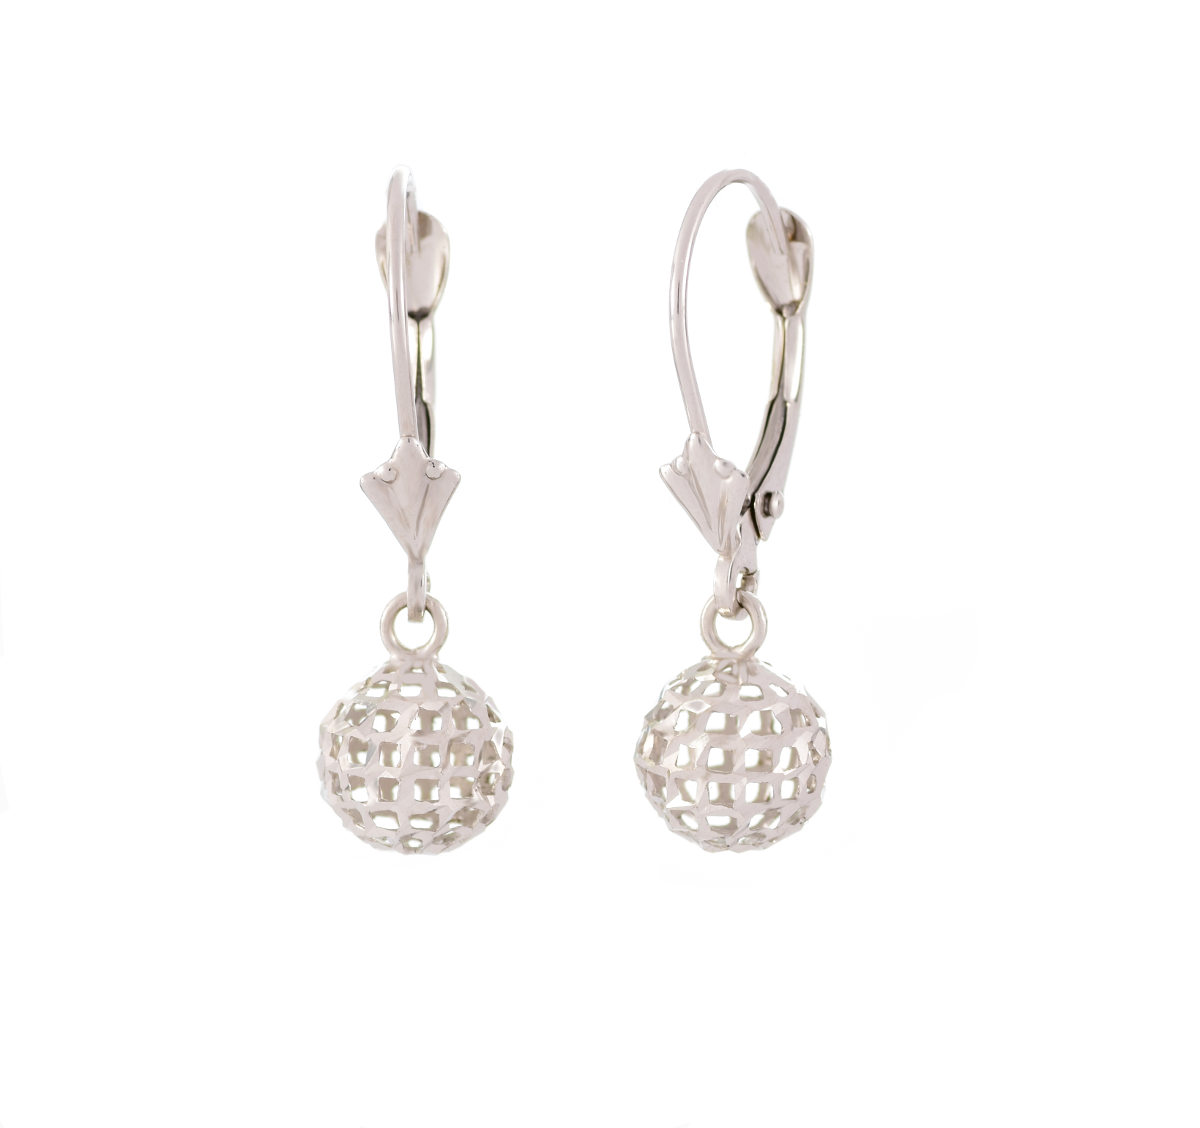 Shop For Dangling Earring At Anny Gabriella Ny: 14k Gold, 14k Gold Plated,  14k White Gold, Cubic Zirconia, Dangling, Earrings, Pearl, Sterling Silver,